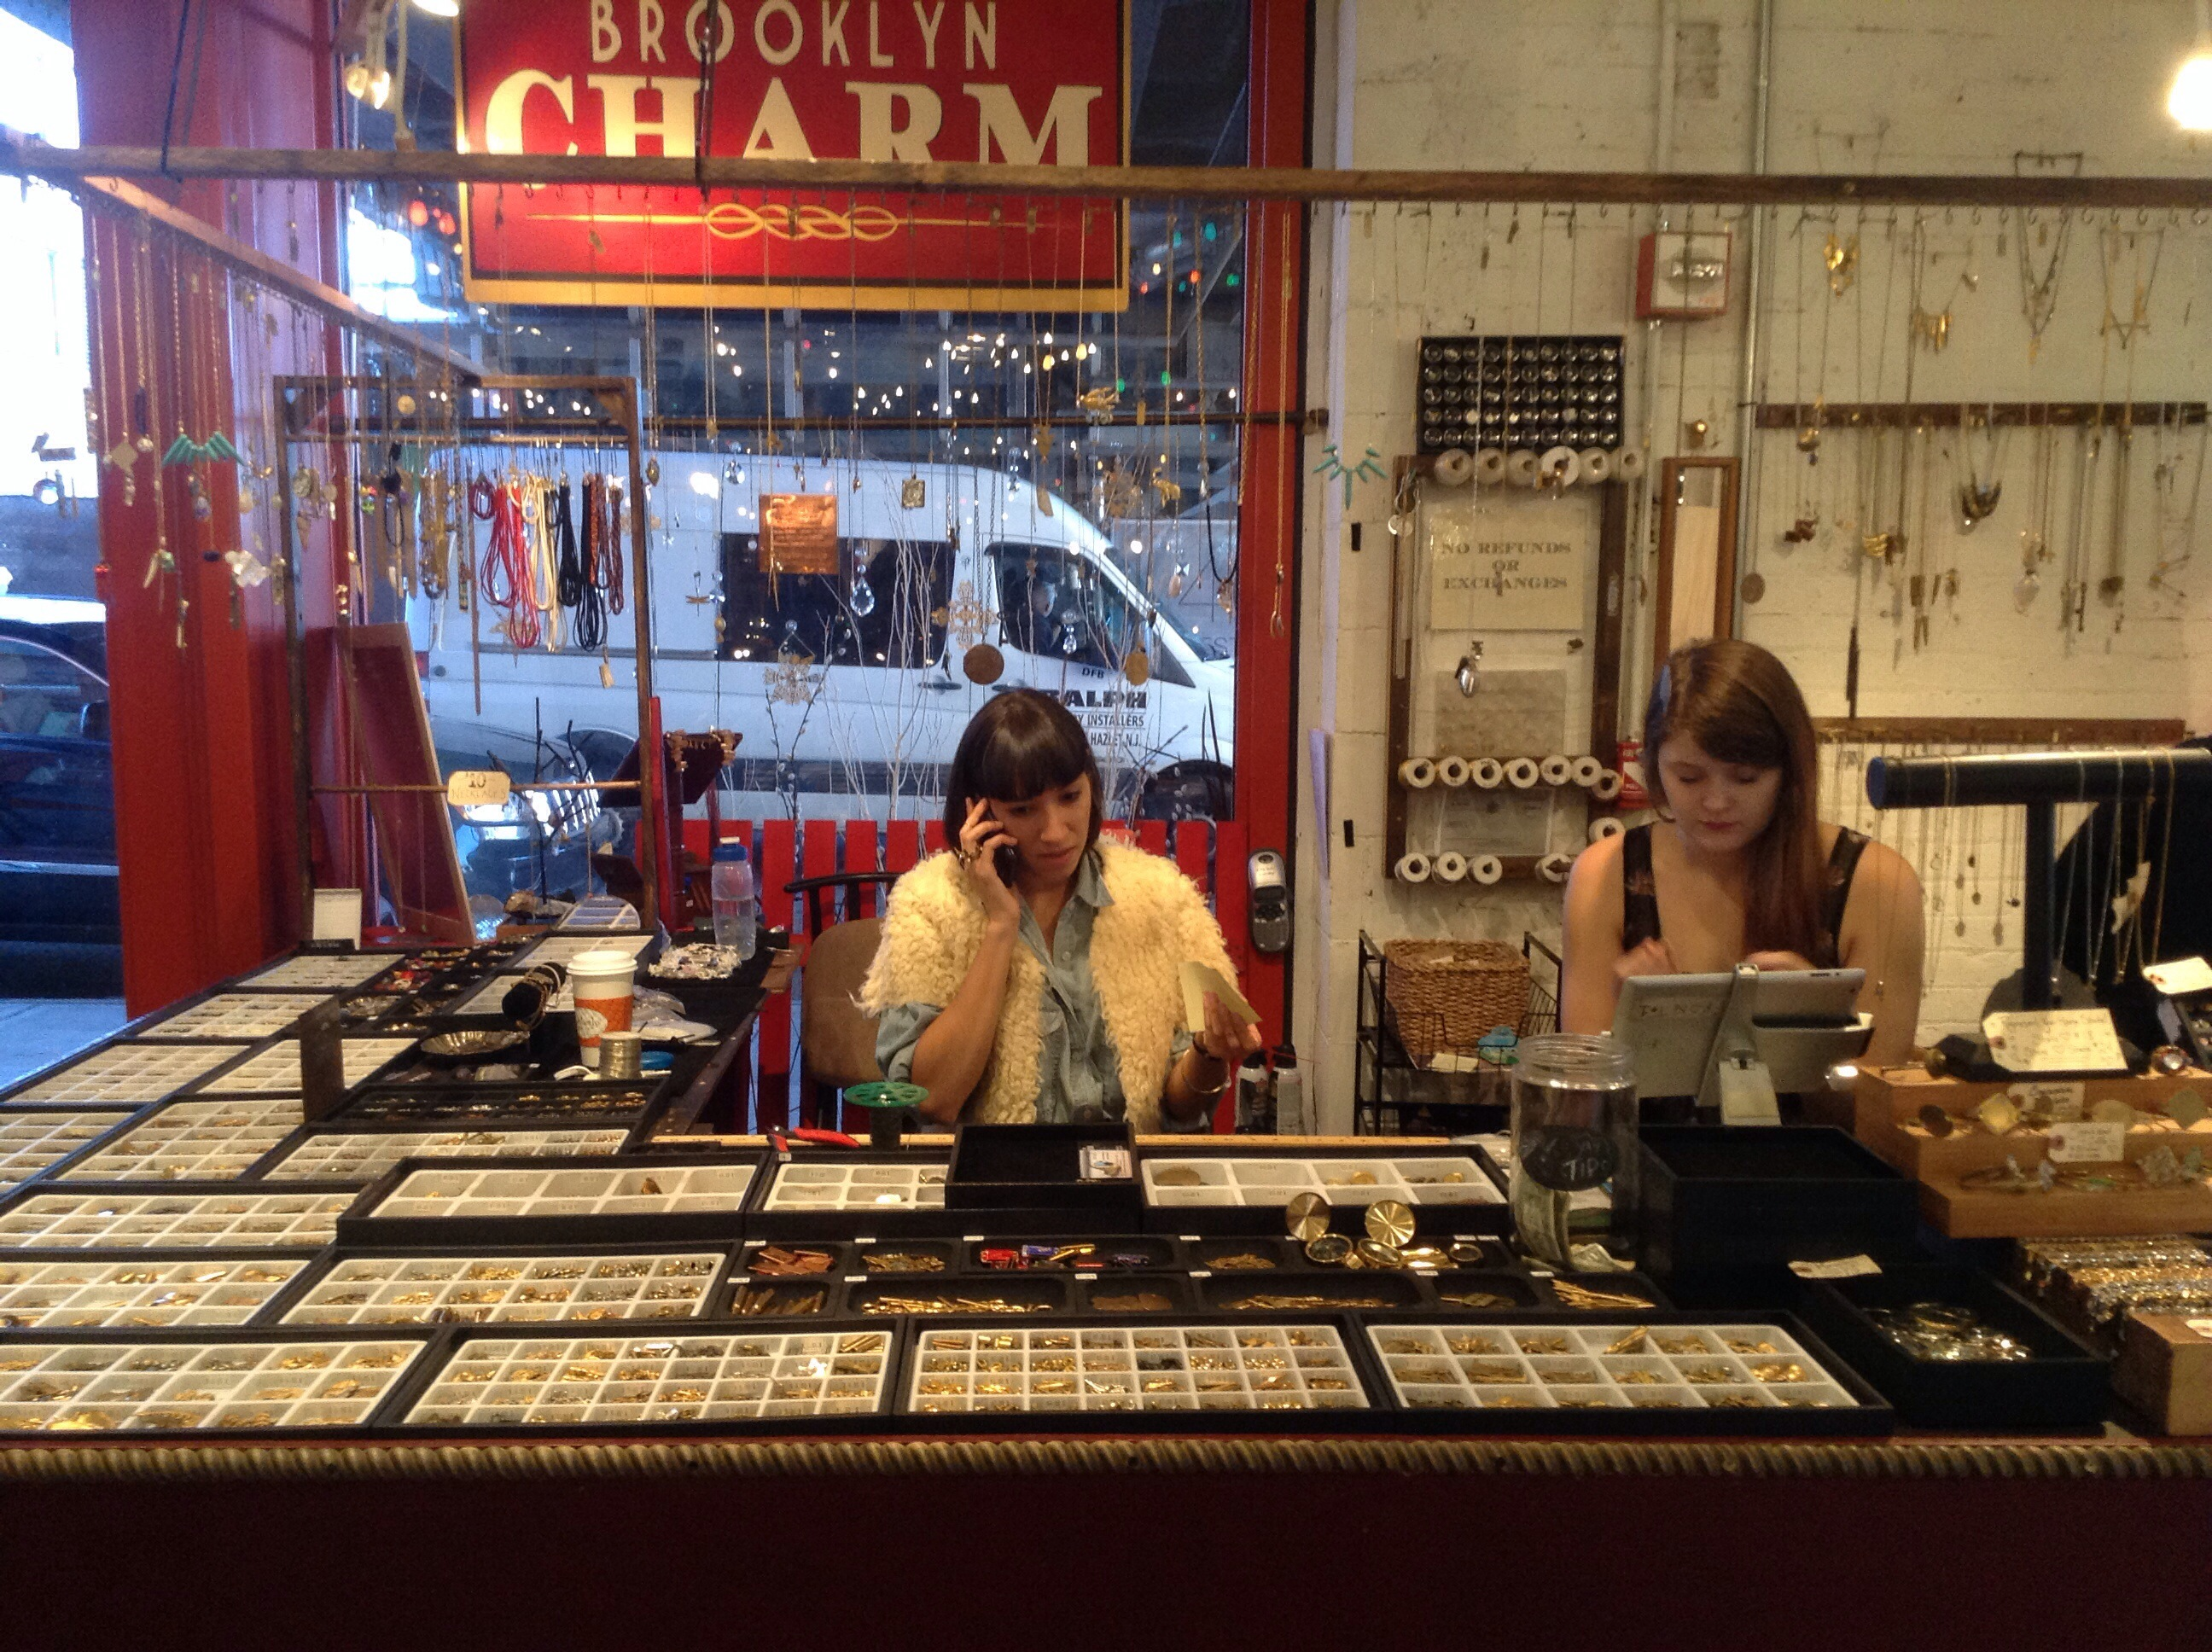 ny-nyc-nova-york-brooklyn-charm-colar-chelsea-market-dica-blog-acessorio-williamsburg